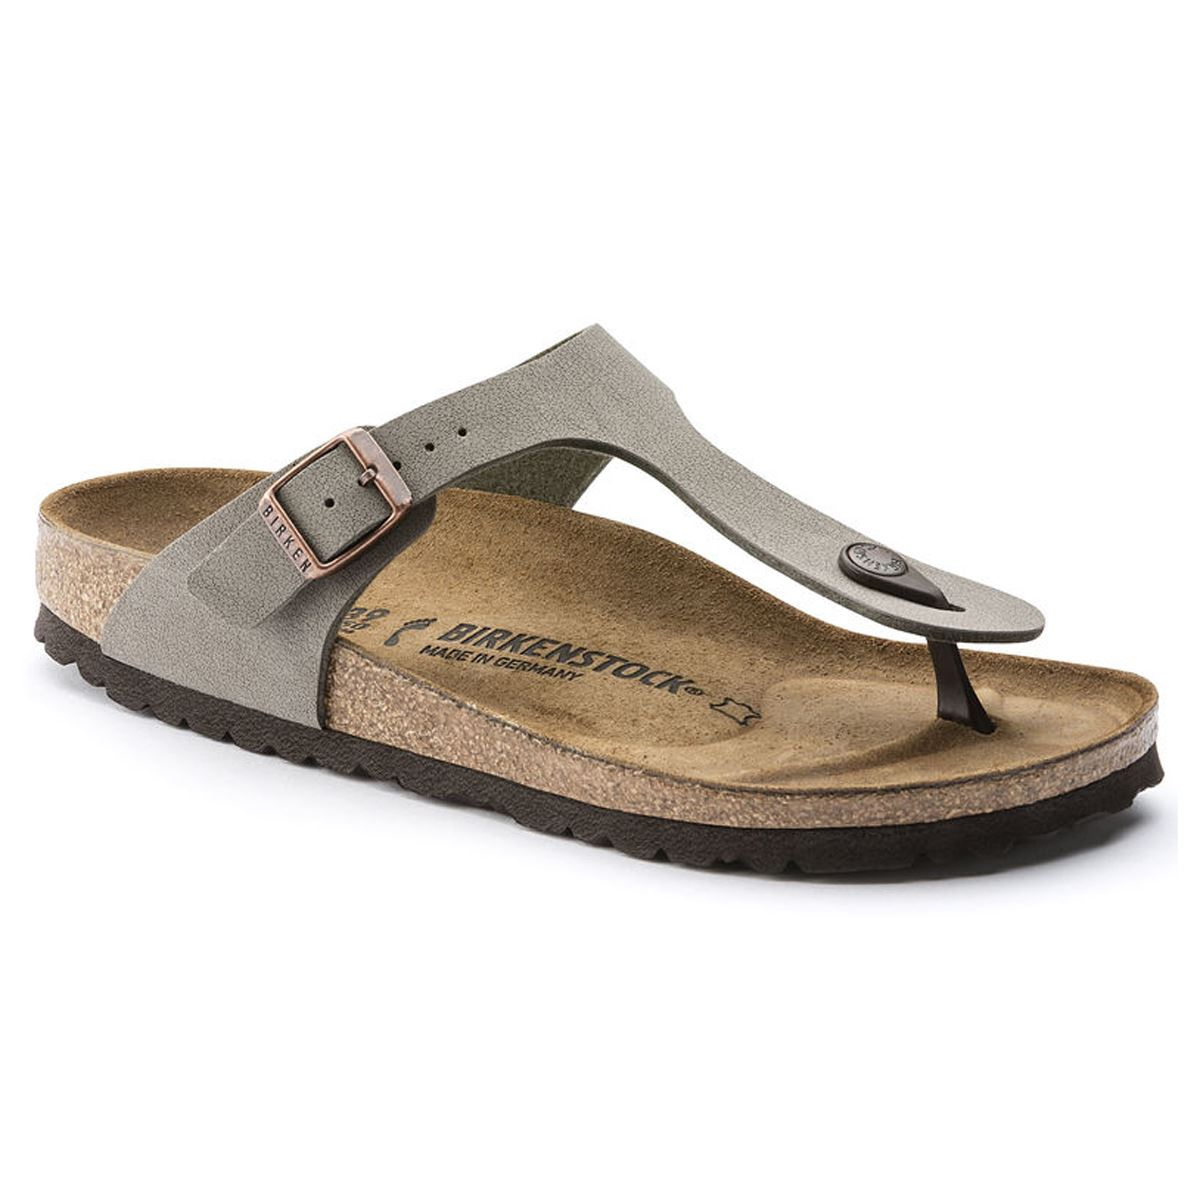 521808ac089 Birkenstock Gizeh Toe Post Womens Summer Sandals Thong Style Stone ...